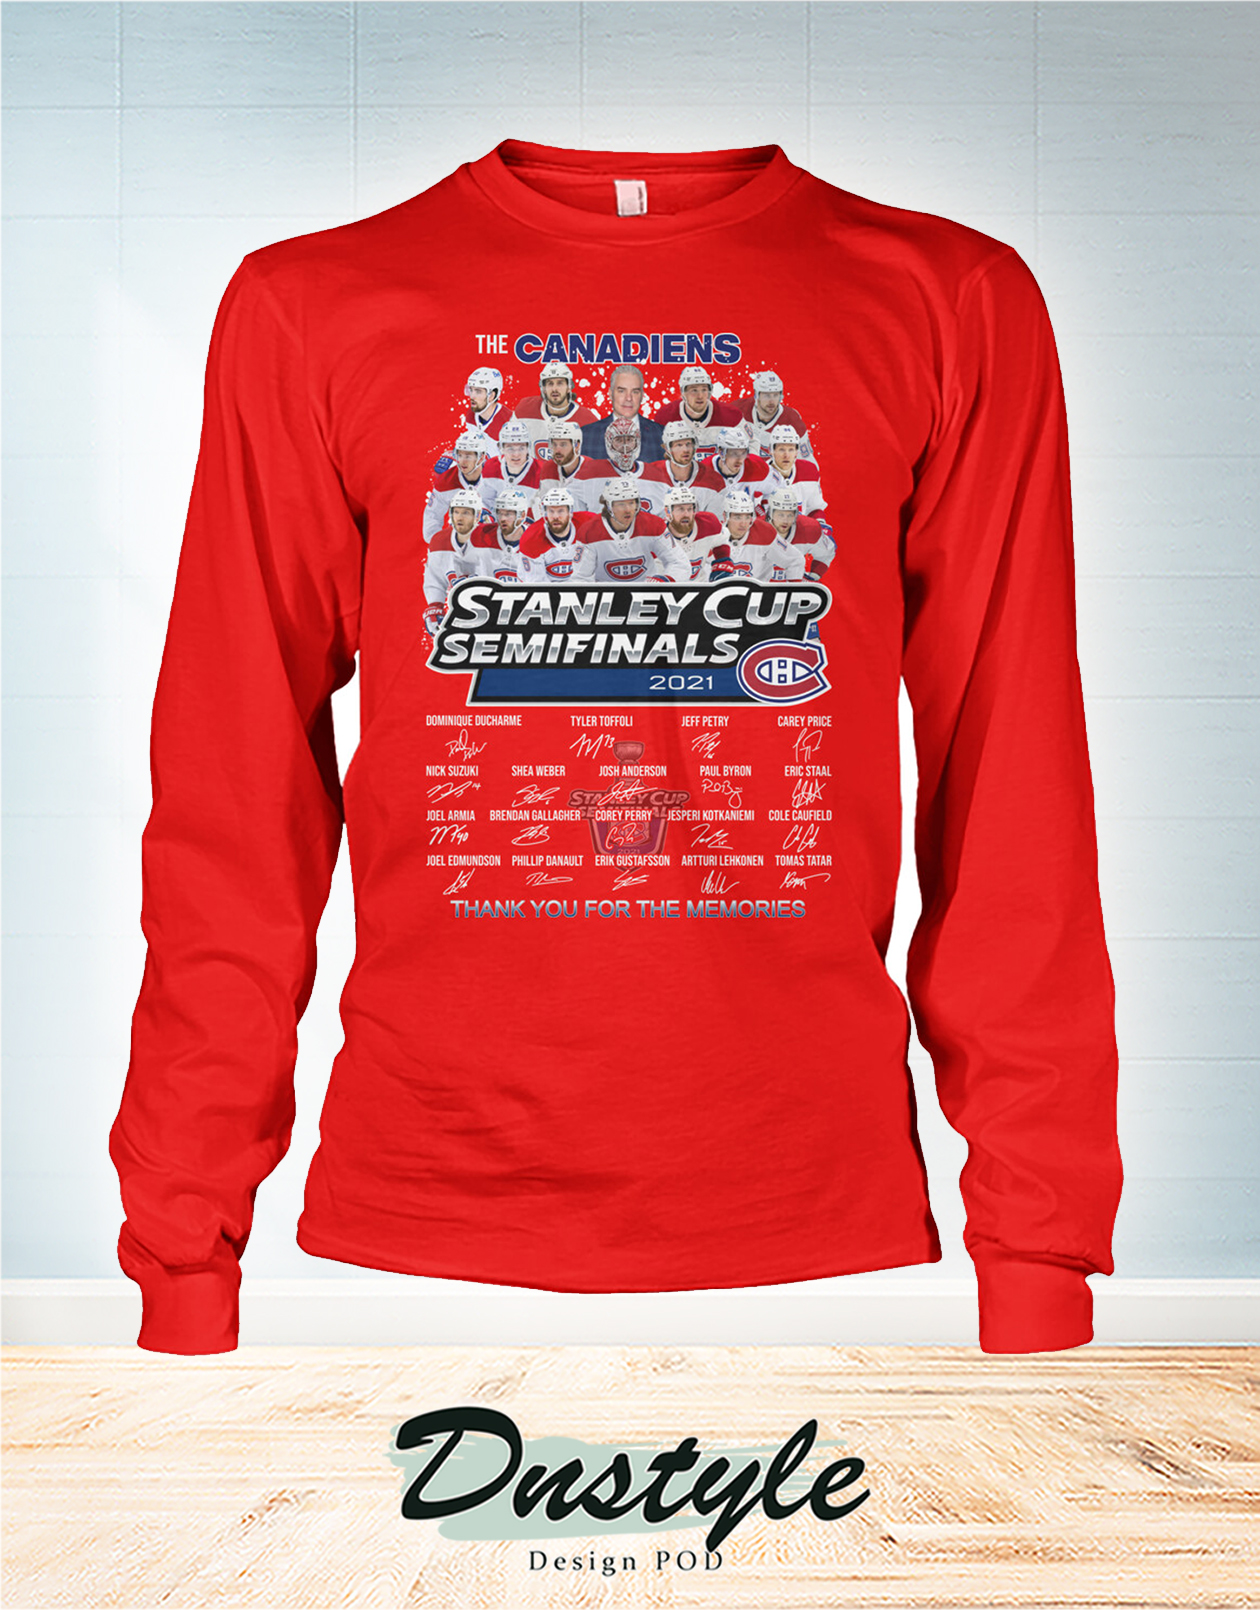 The canadiens stanley cup semifinals 2021 signature long sleeve